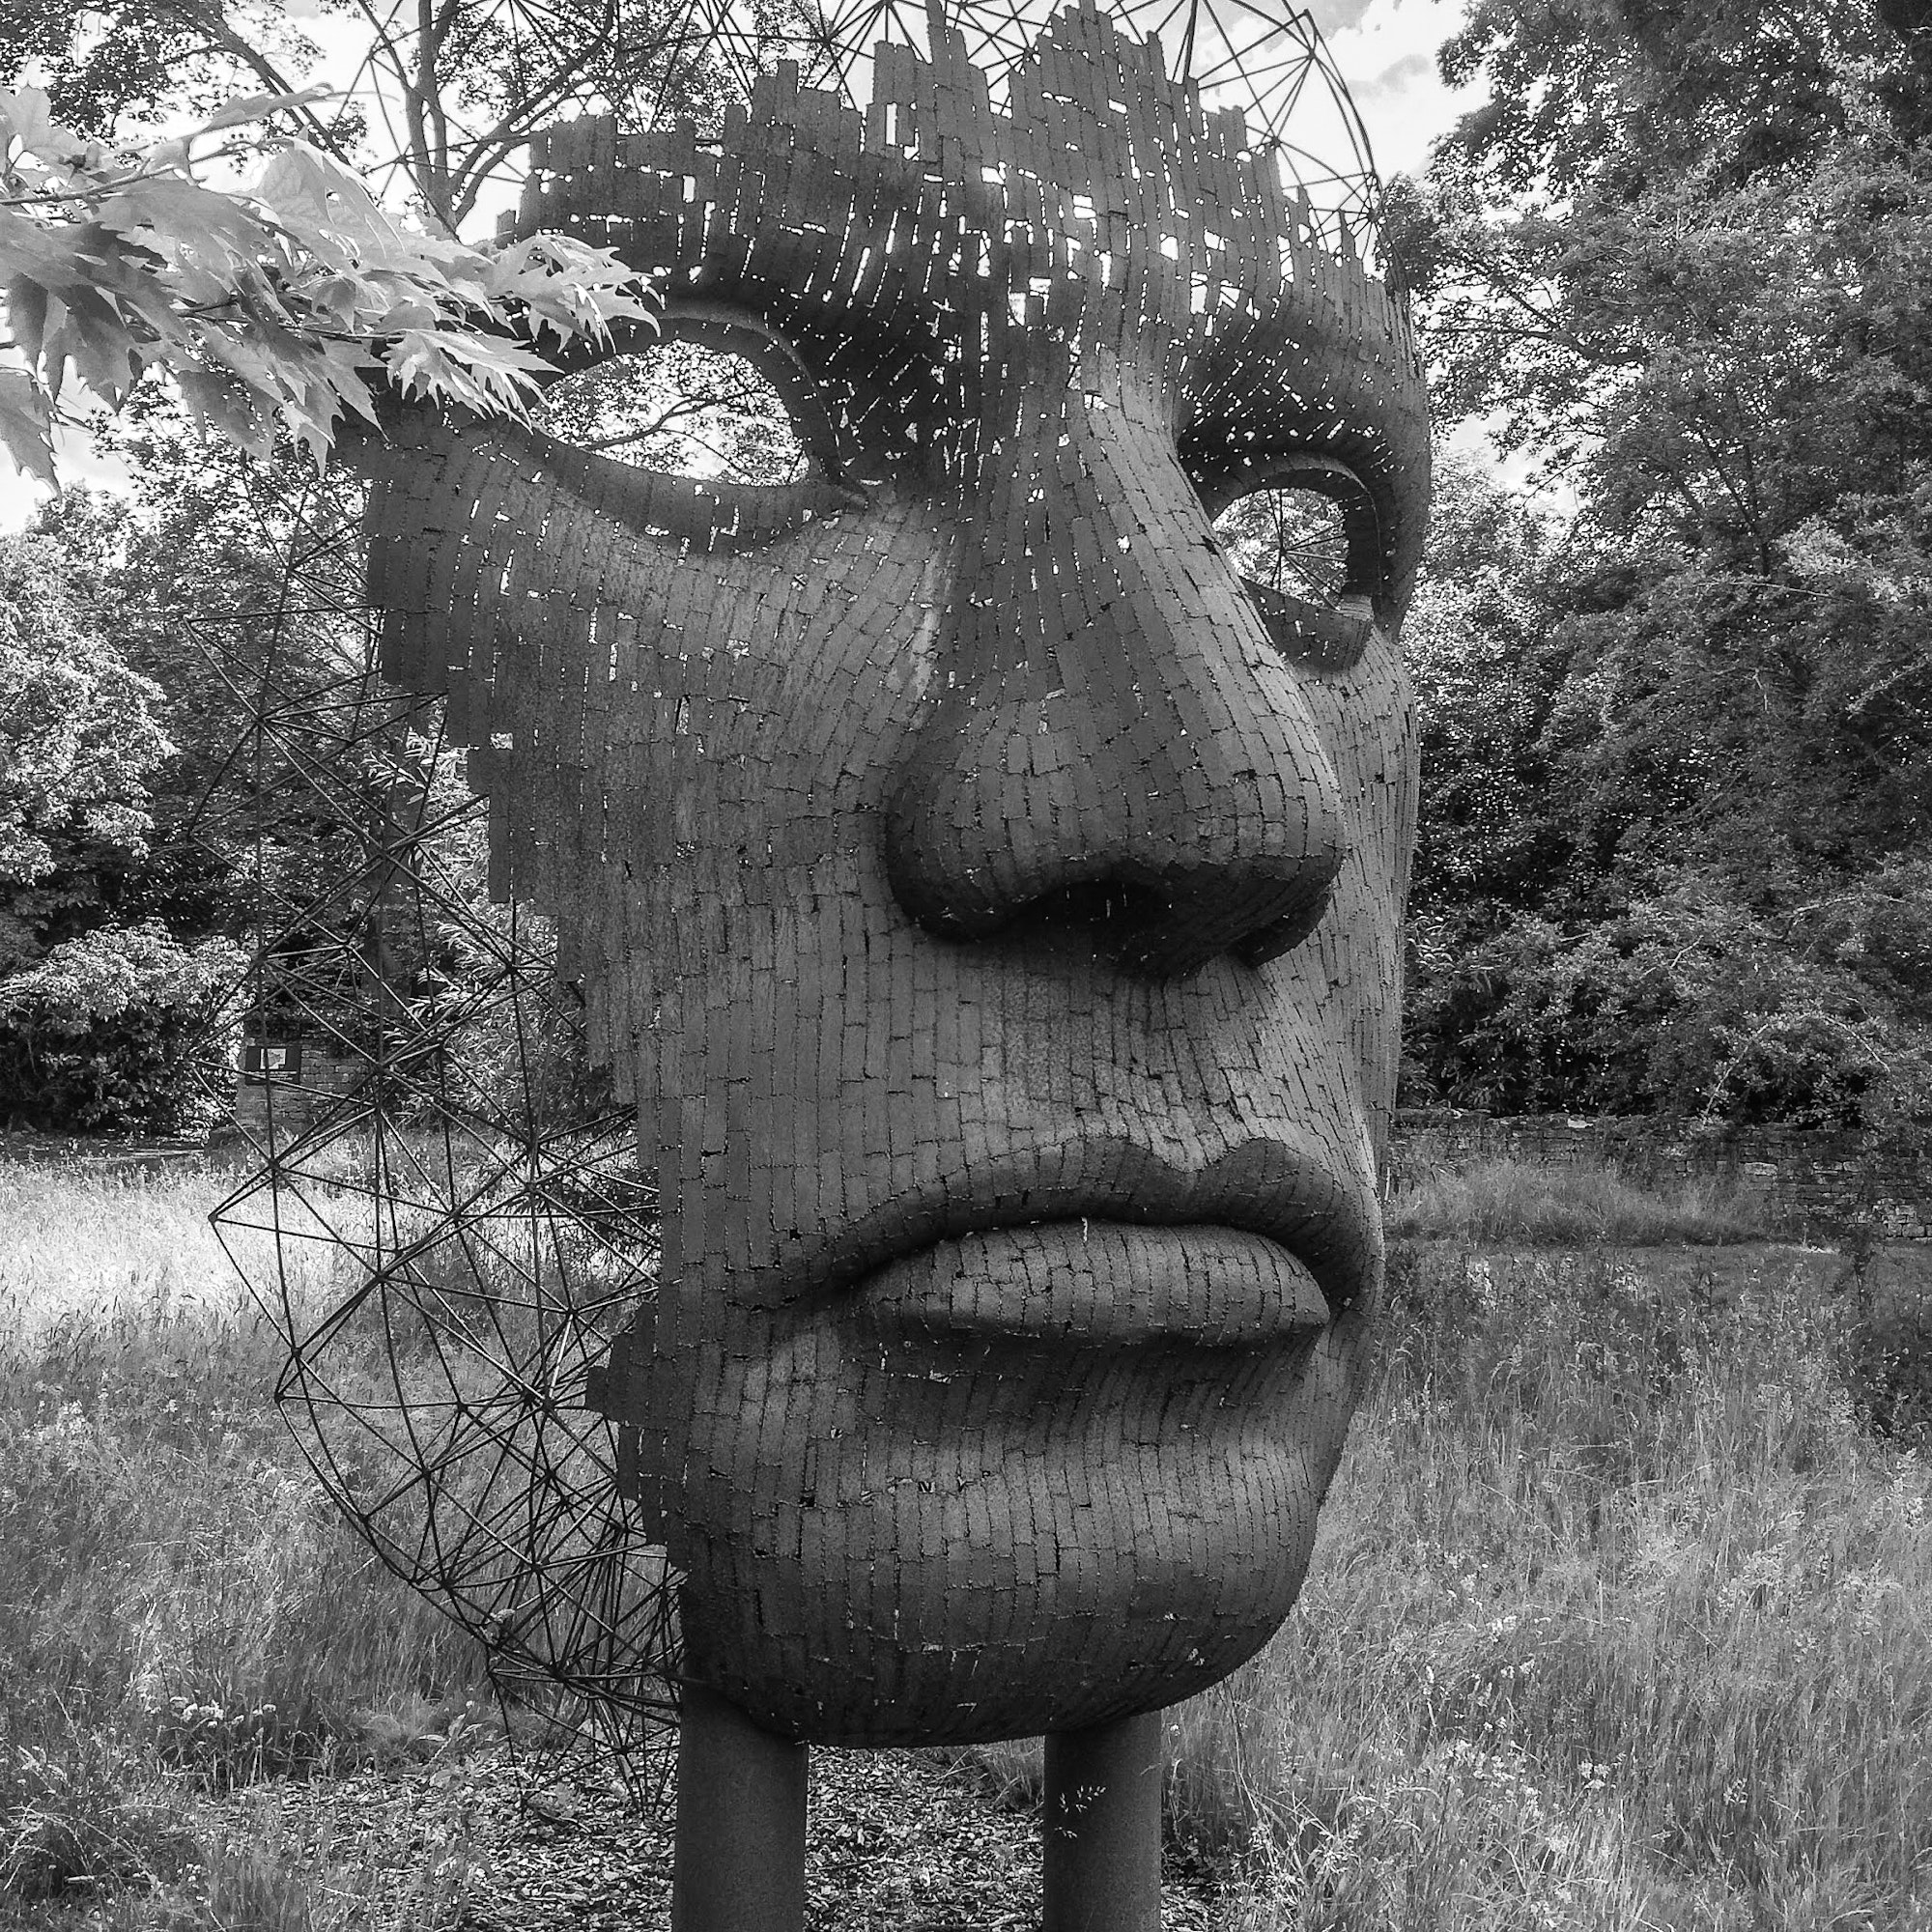 face-black-and-white-woodland-sculptures-3601374